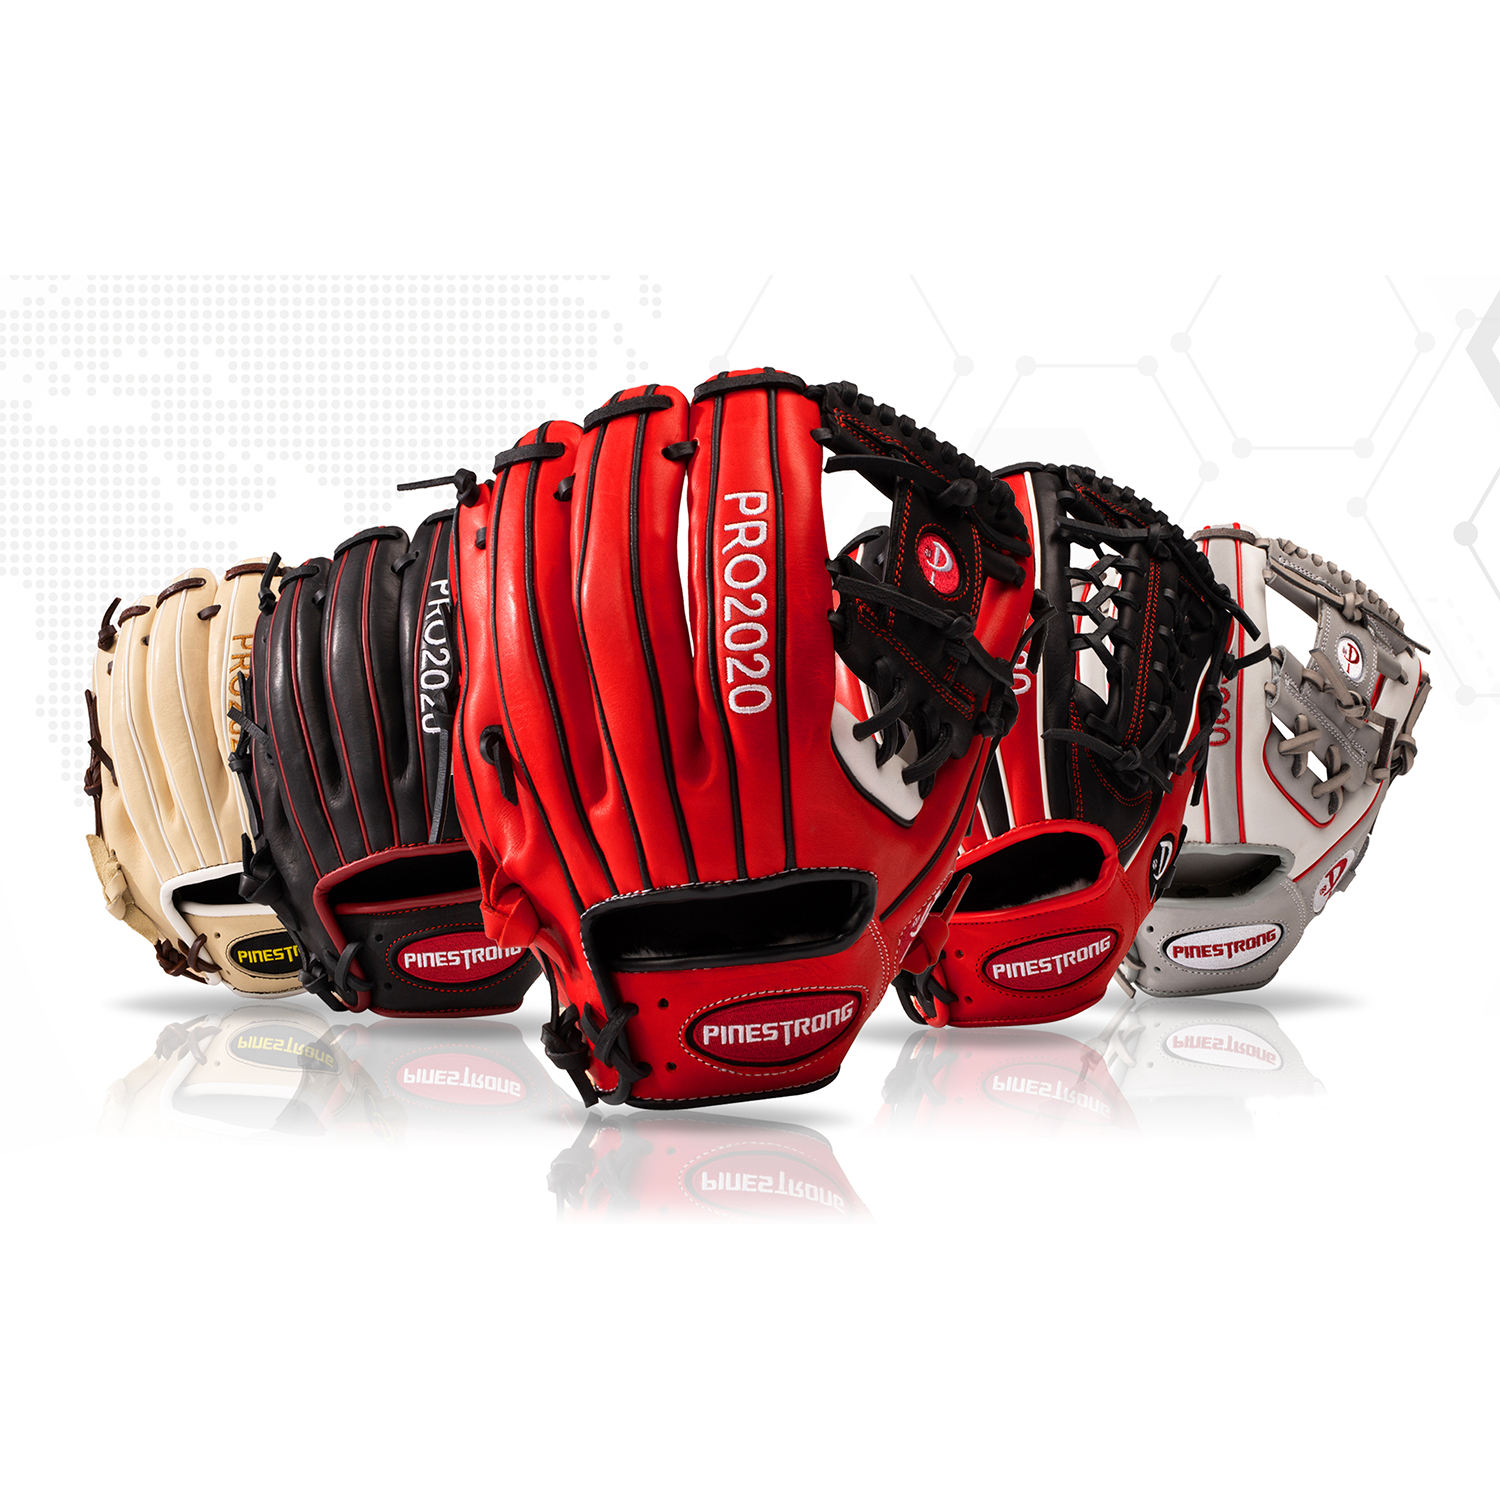 2020 a2000 baseball glove baseball & softball gloves leather